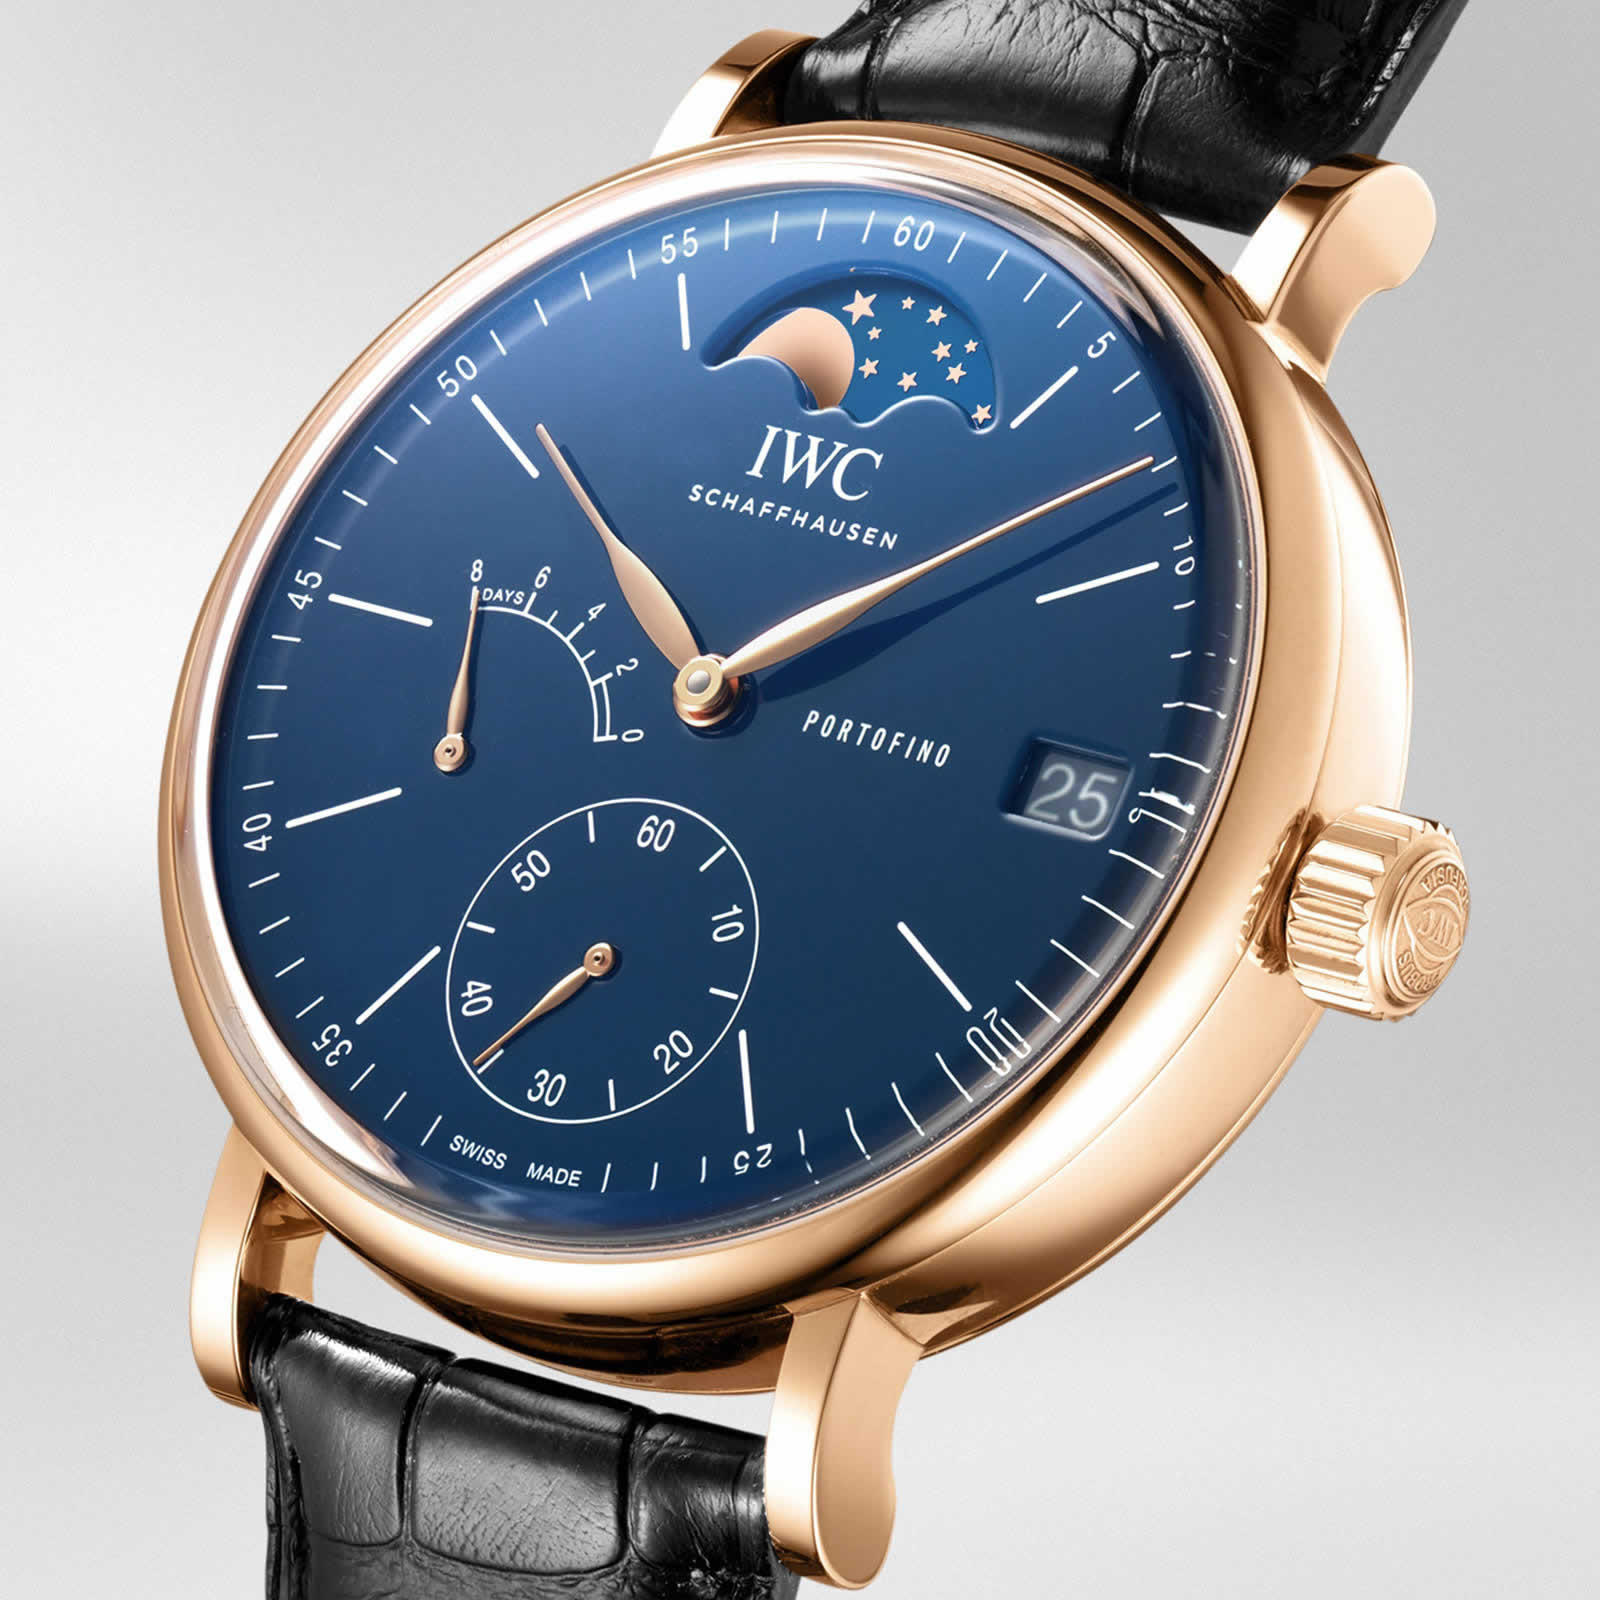 iwc-Portugieser-Hand-Wound-Eight-Days-Edition-150-Years.jpg